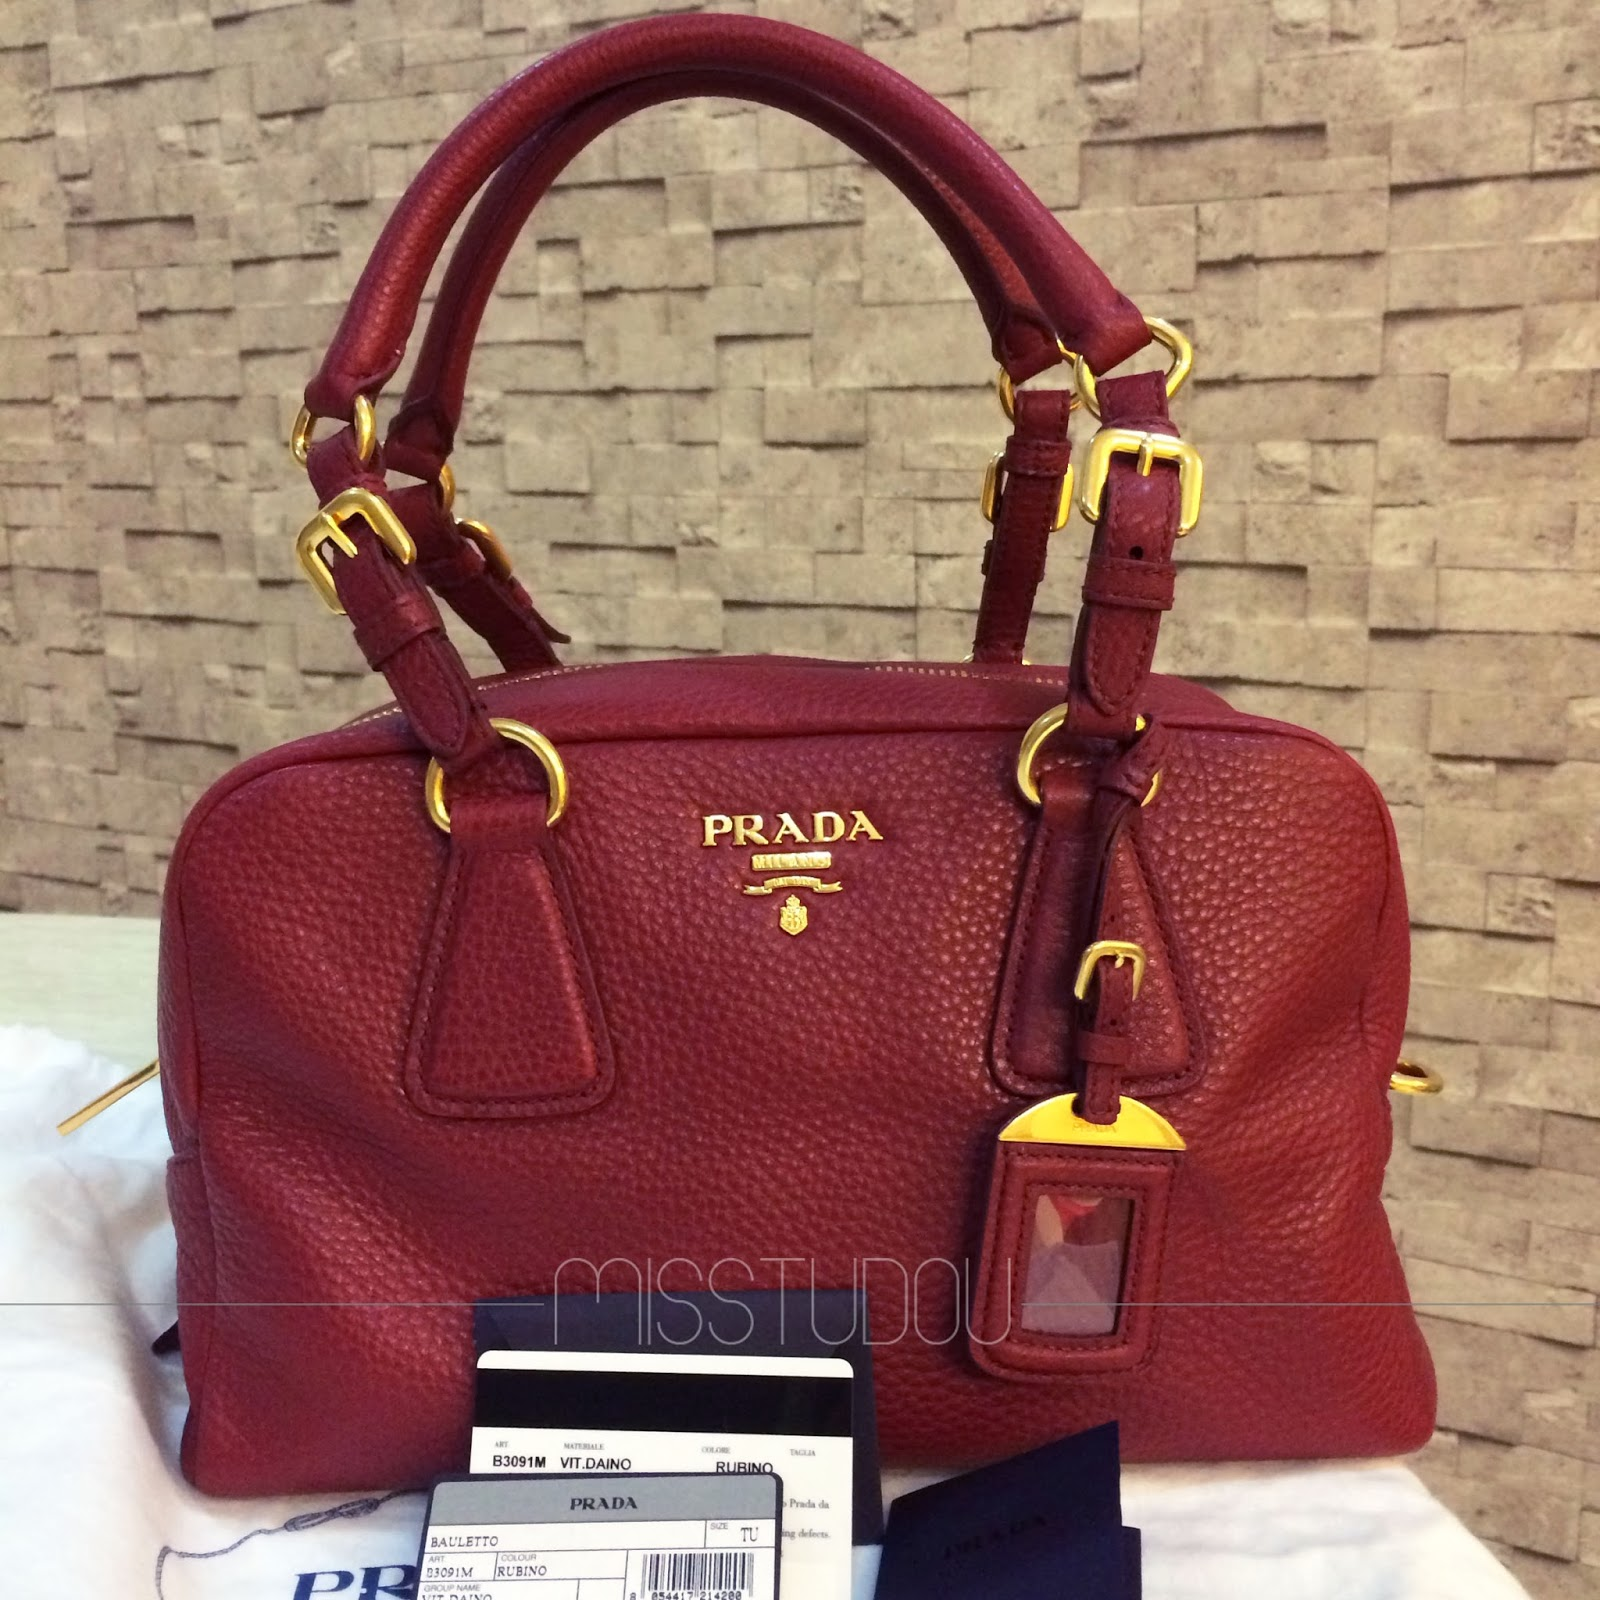 prada begs - MISSTUDOU | YOUR 100% AUTHENTIC BAG